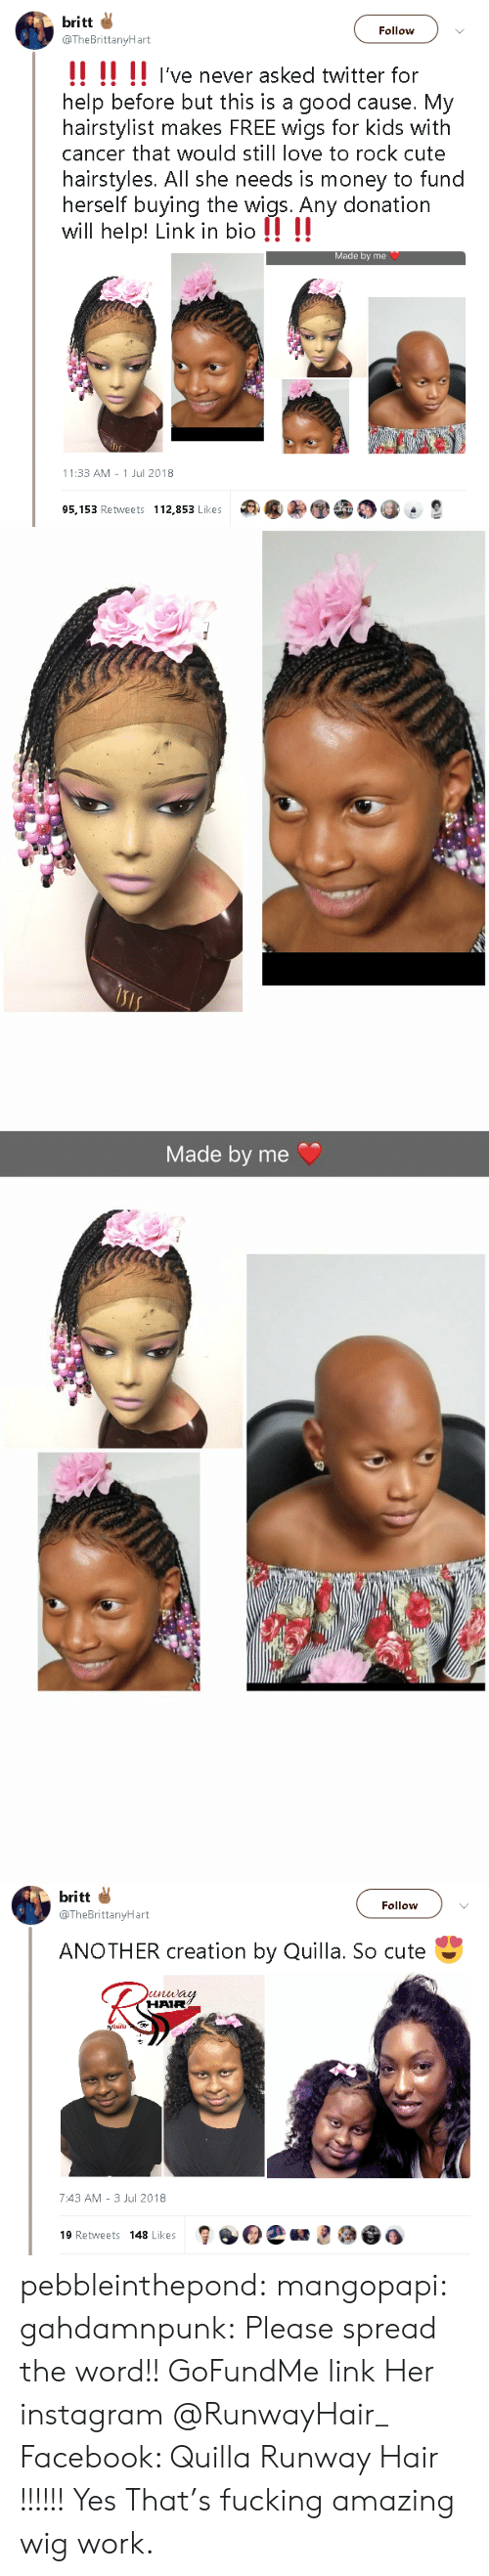 Gofundme: britt  Follow  @TheBrittanyHart  !! !! !! I've never asked twitter for  help before but this is a good cause. My  hairstylist makes FREE wigs for kids with  cancer that would still love to rock cute  hairstyles. All she needs is money to fund  herself buying the wigs. Any donation  will help! Link in bio !! !!  Made by me  11:33 AM 1 Jul 2018  95,153 Retweets 112,853 Likes   Made by me   britt  Follow  @TheBrittanyHart  ANOTHER creation by Quilla. So cute  unway  HAIR  7:43 AM 3 Jul 2018  19 Retweets 148 Likes pebbleinthepond: mangopapi:  gahdamnpunk:  Please spread the word!! GoFundMe link Her instagram  @RunwayHair_   Facebook: Quilla Runway Hair     !!!!!! Yes    That's fucking amazing wig work.